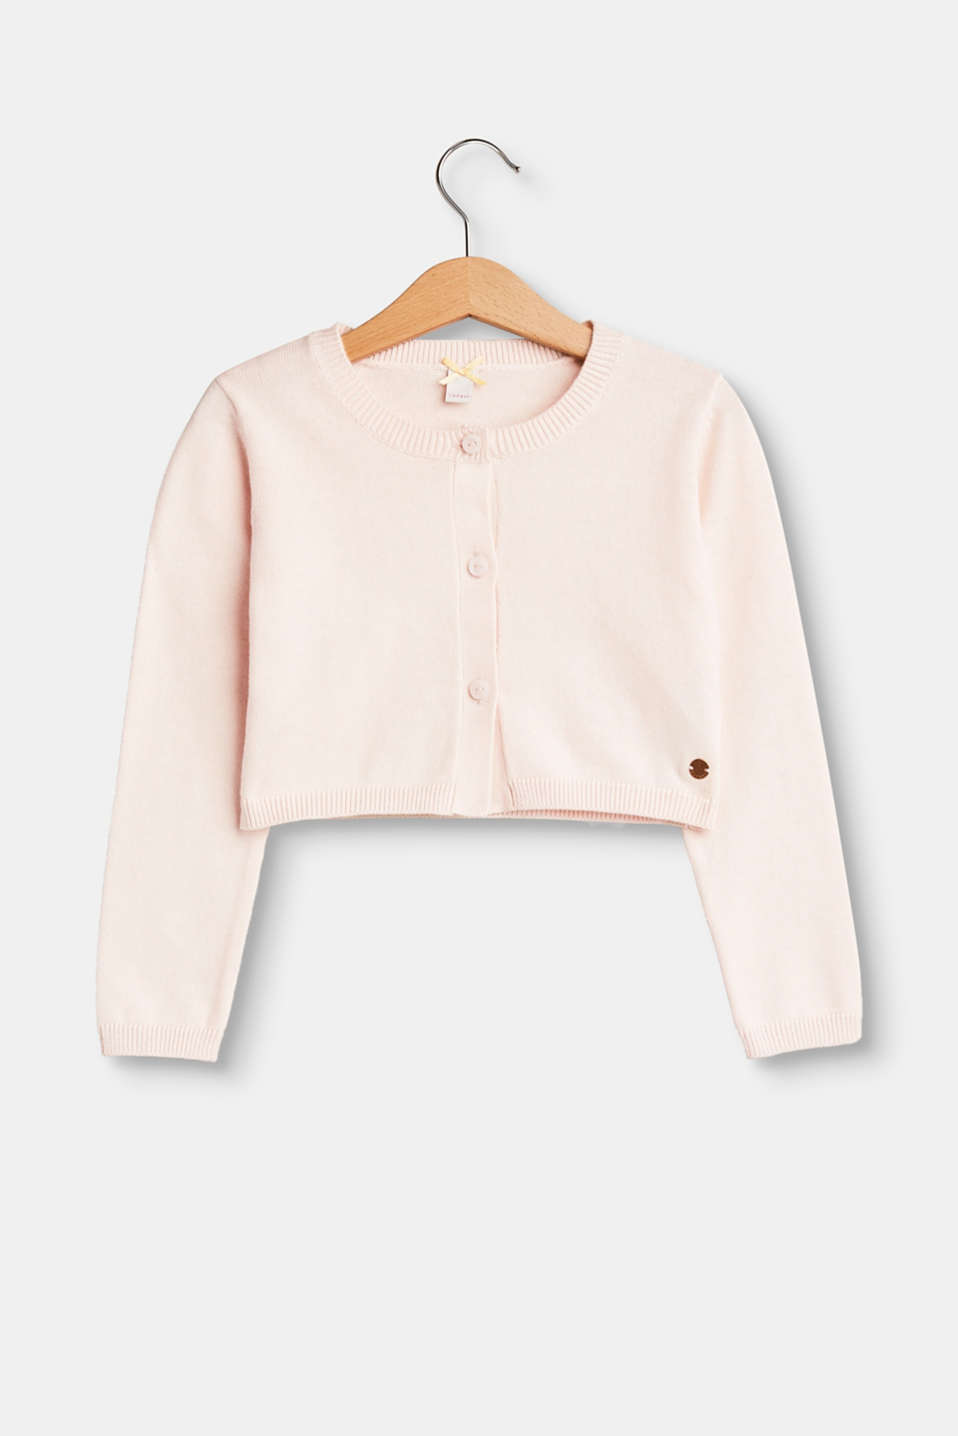 Esprit - Fine-knit bolero in 100% cotton